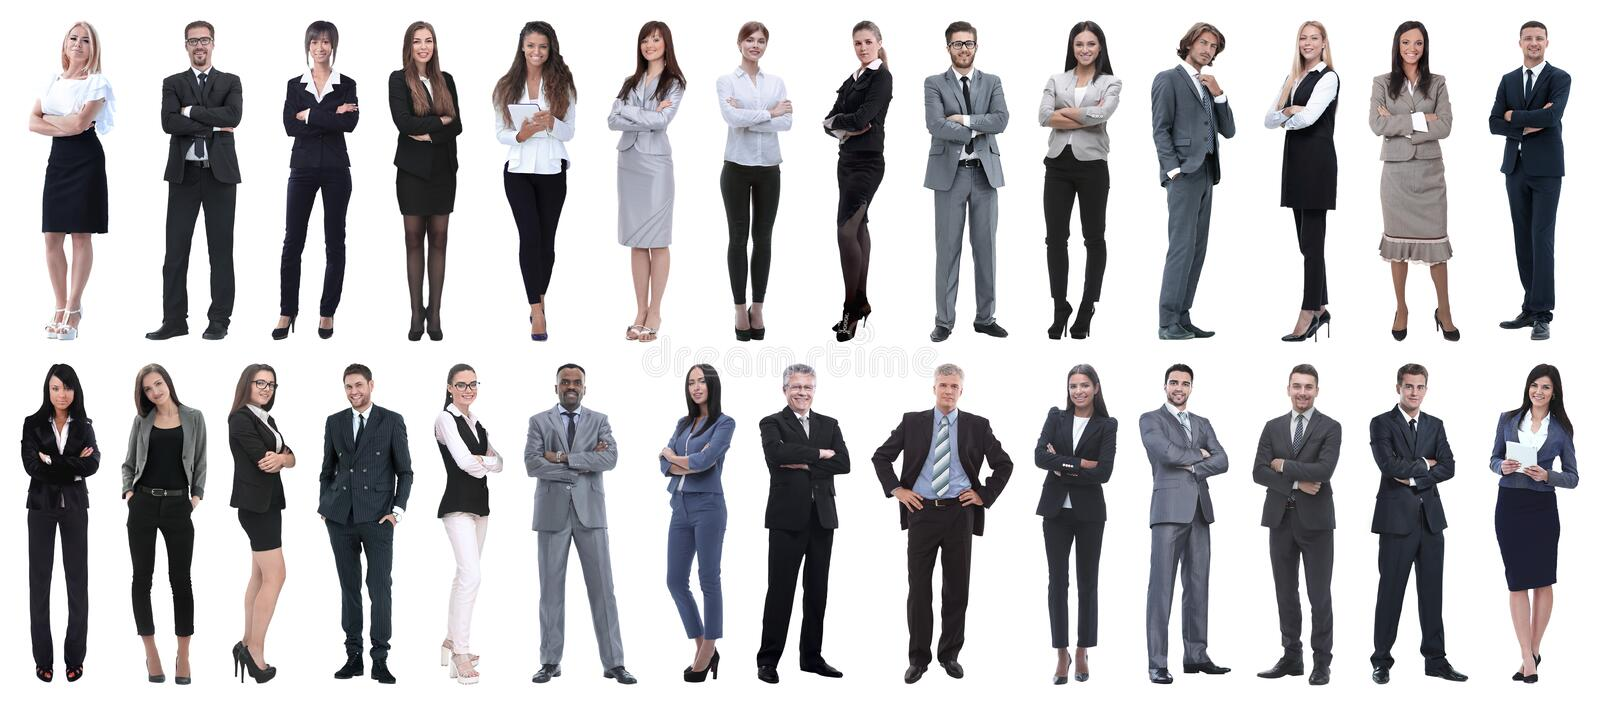 Successful business people isolated on white background stock images